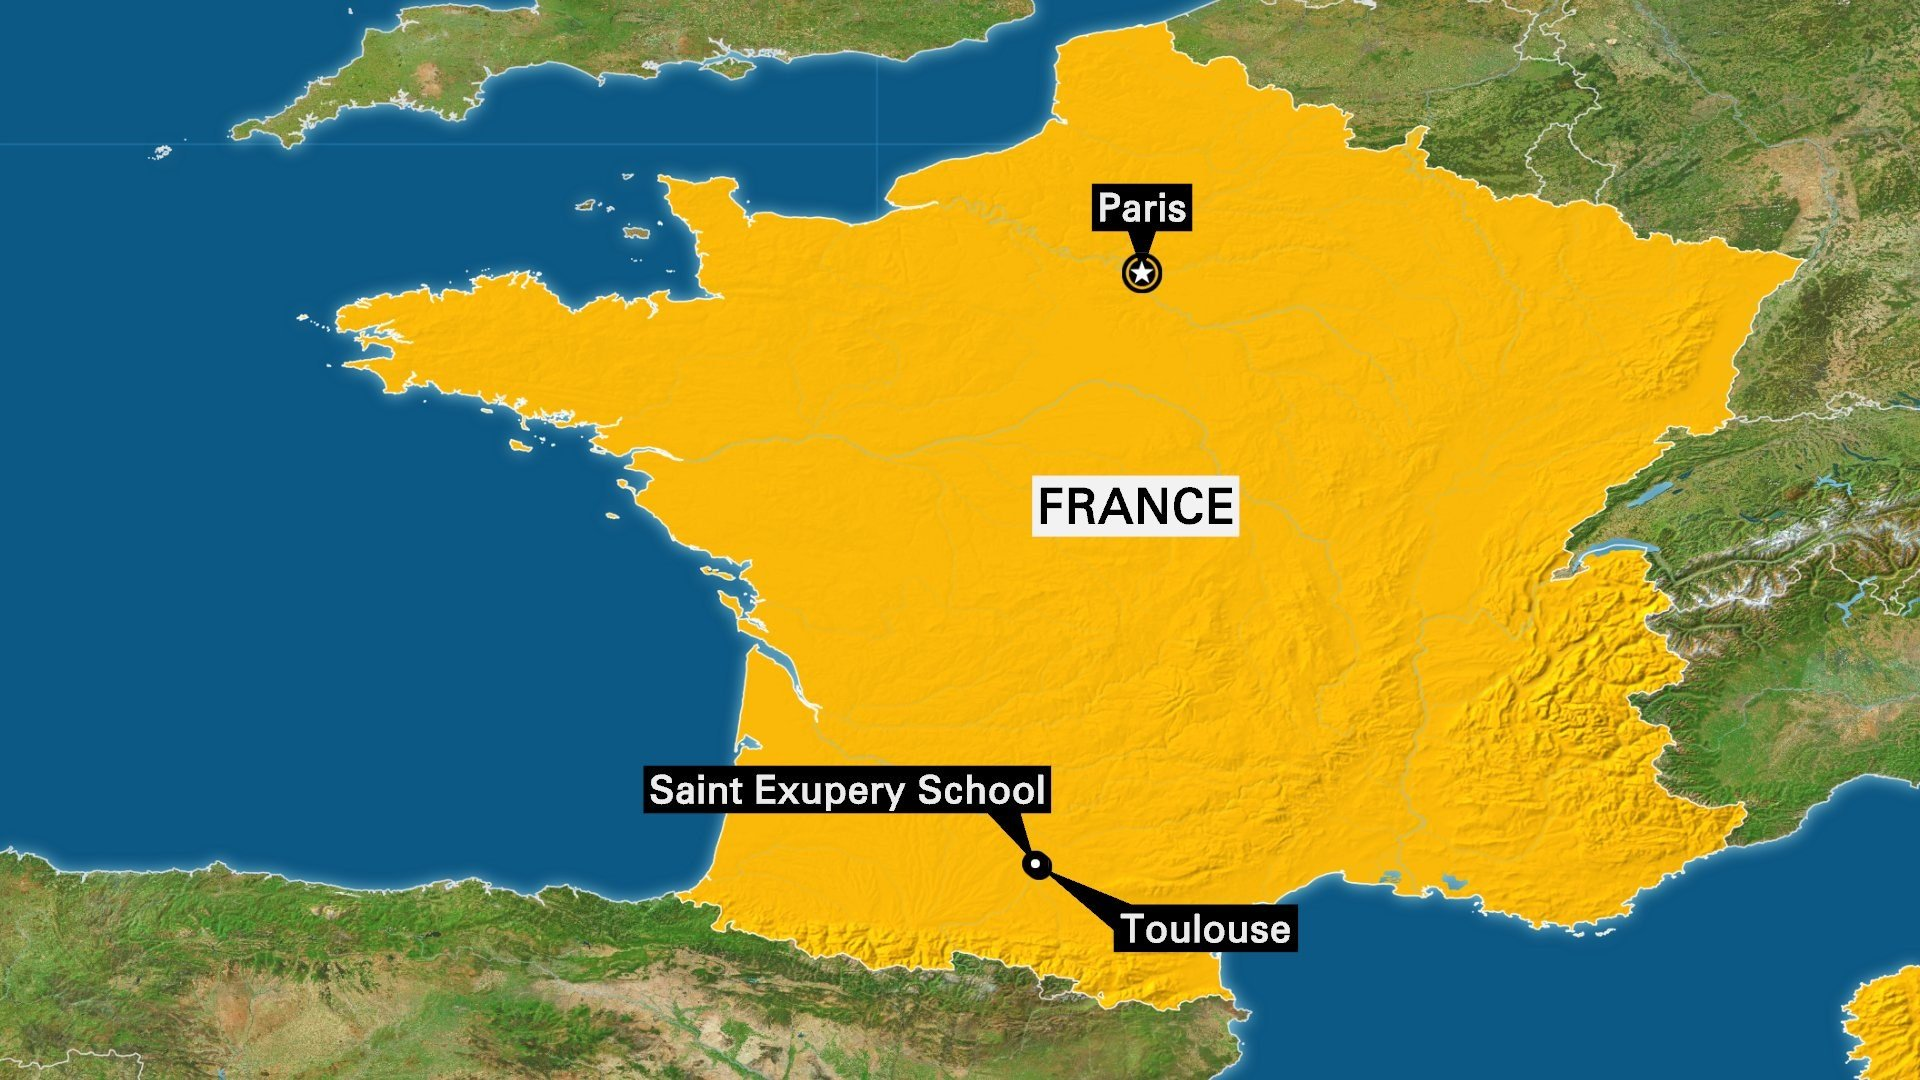 A vehicle was intentionally driven into three students outside a high school near the southern French city of Toulouse, injuring them, the country's interior ministry said.